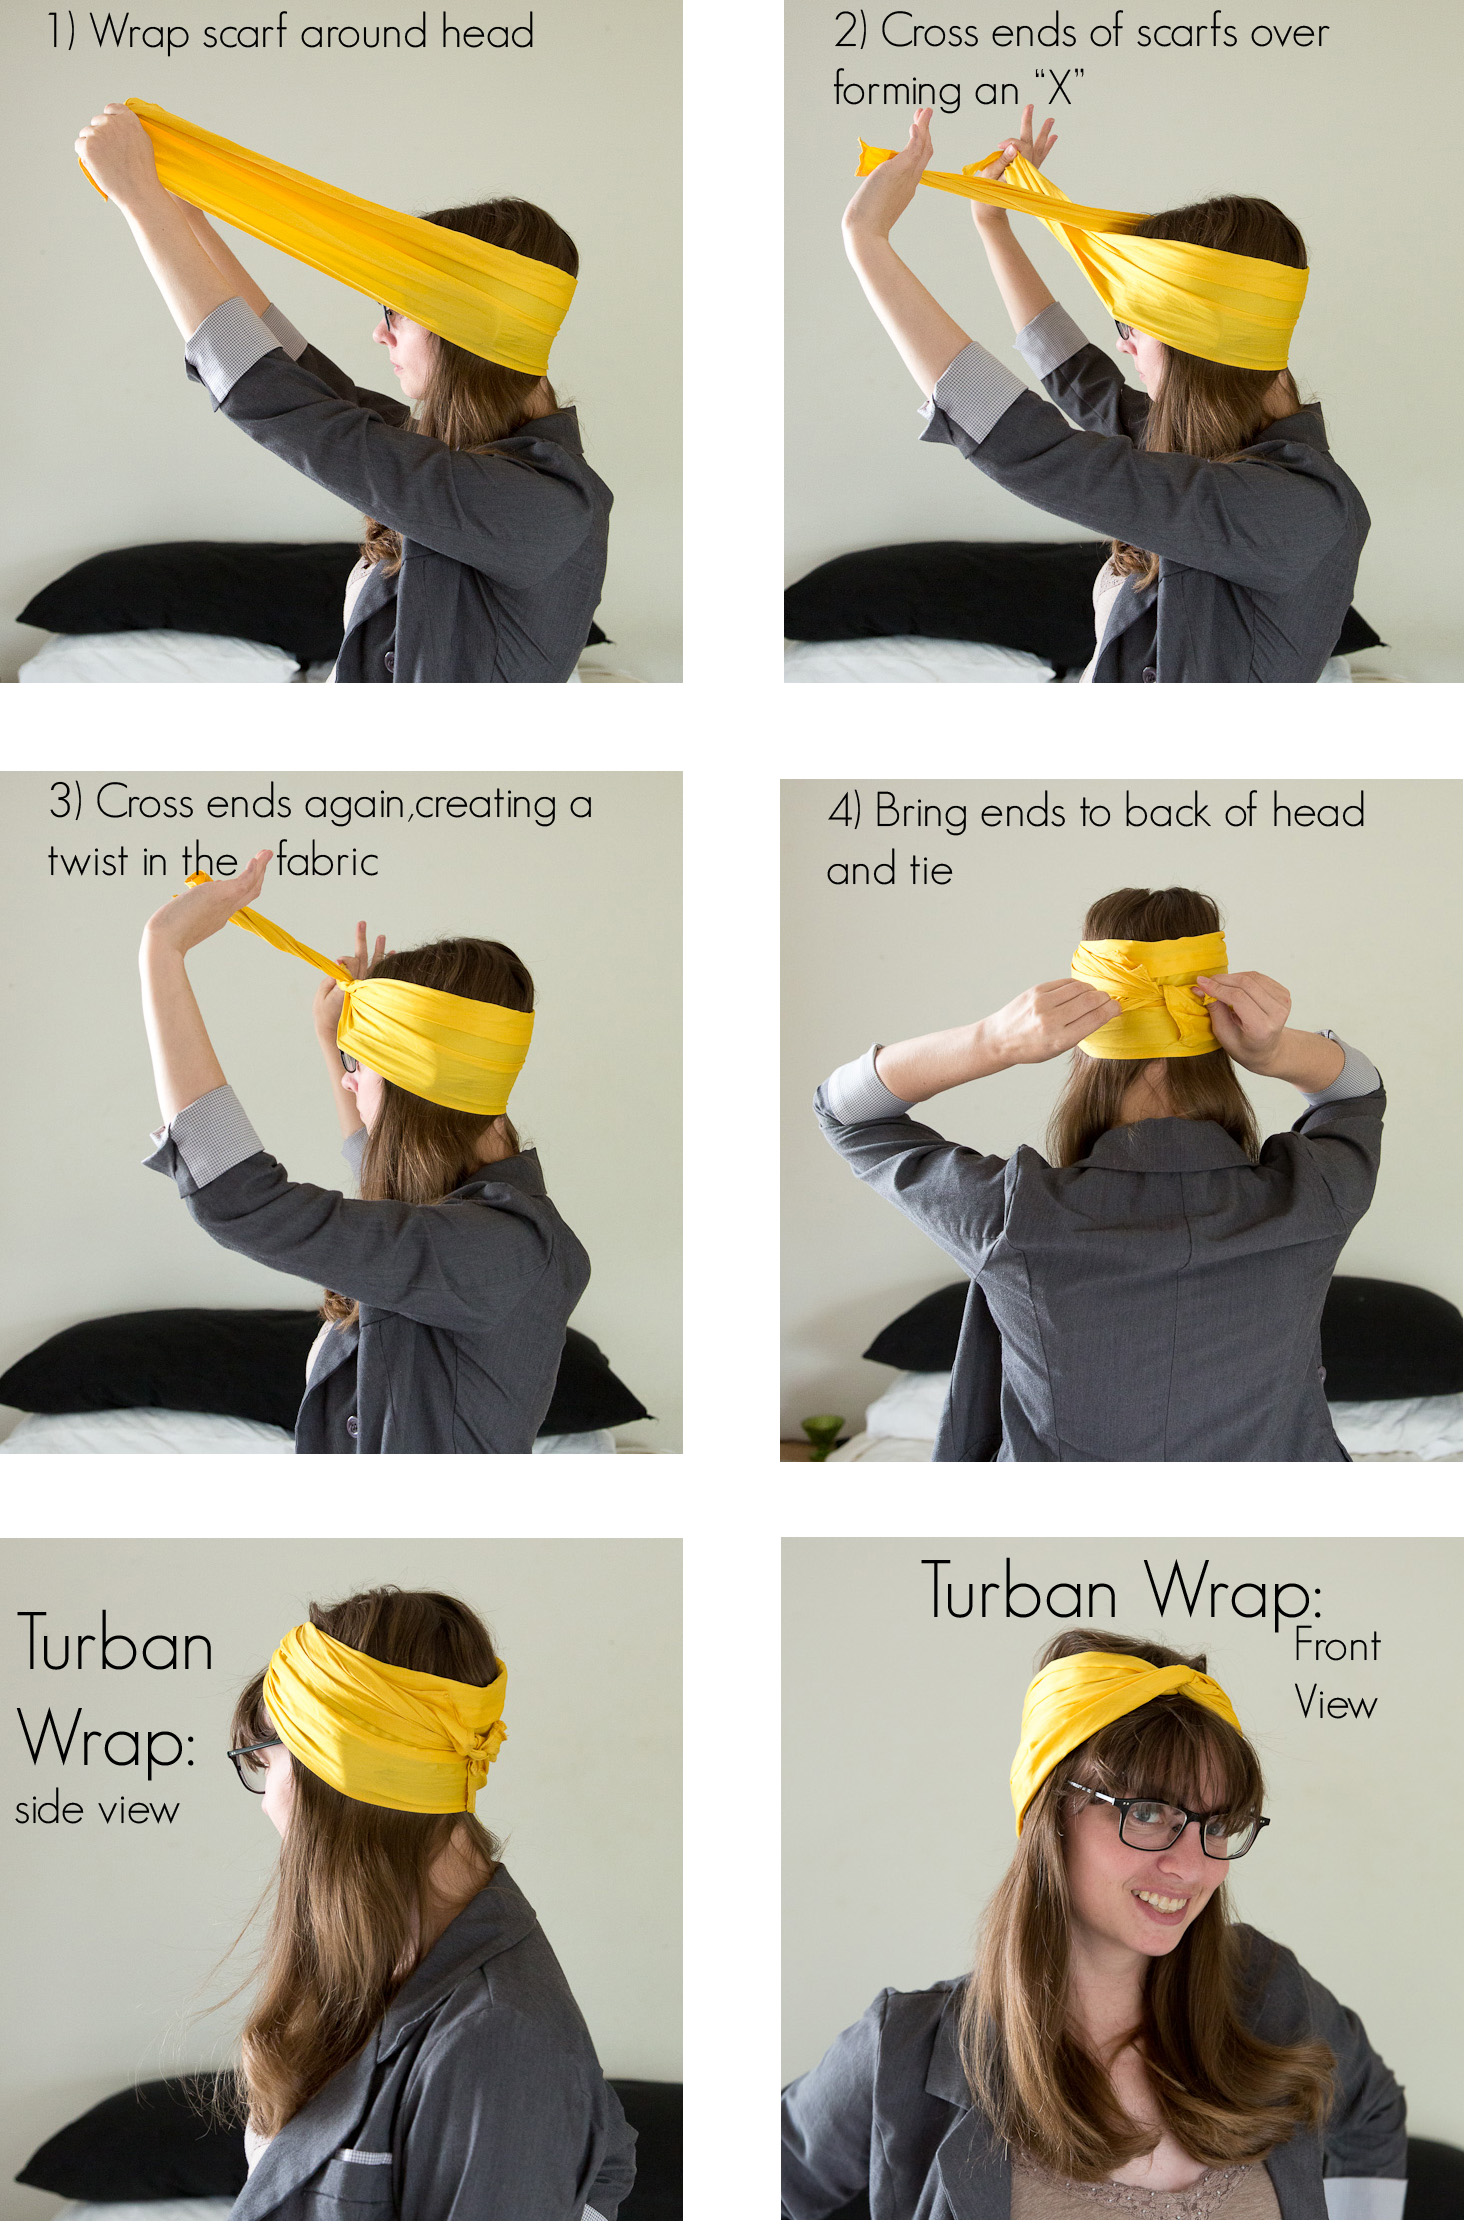 Turban Wrap Instructions